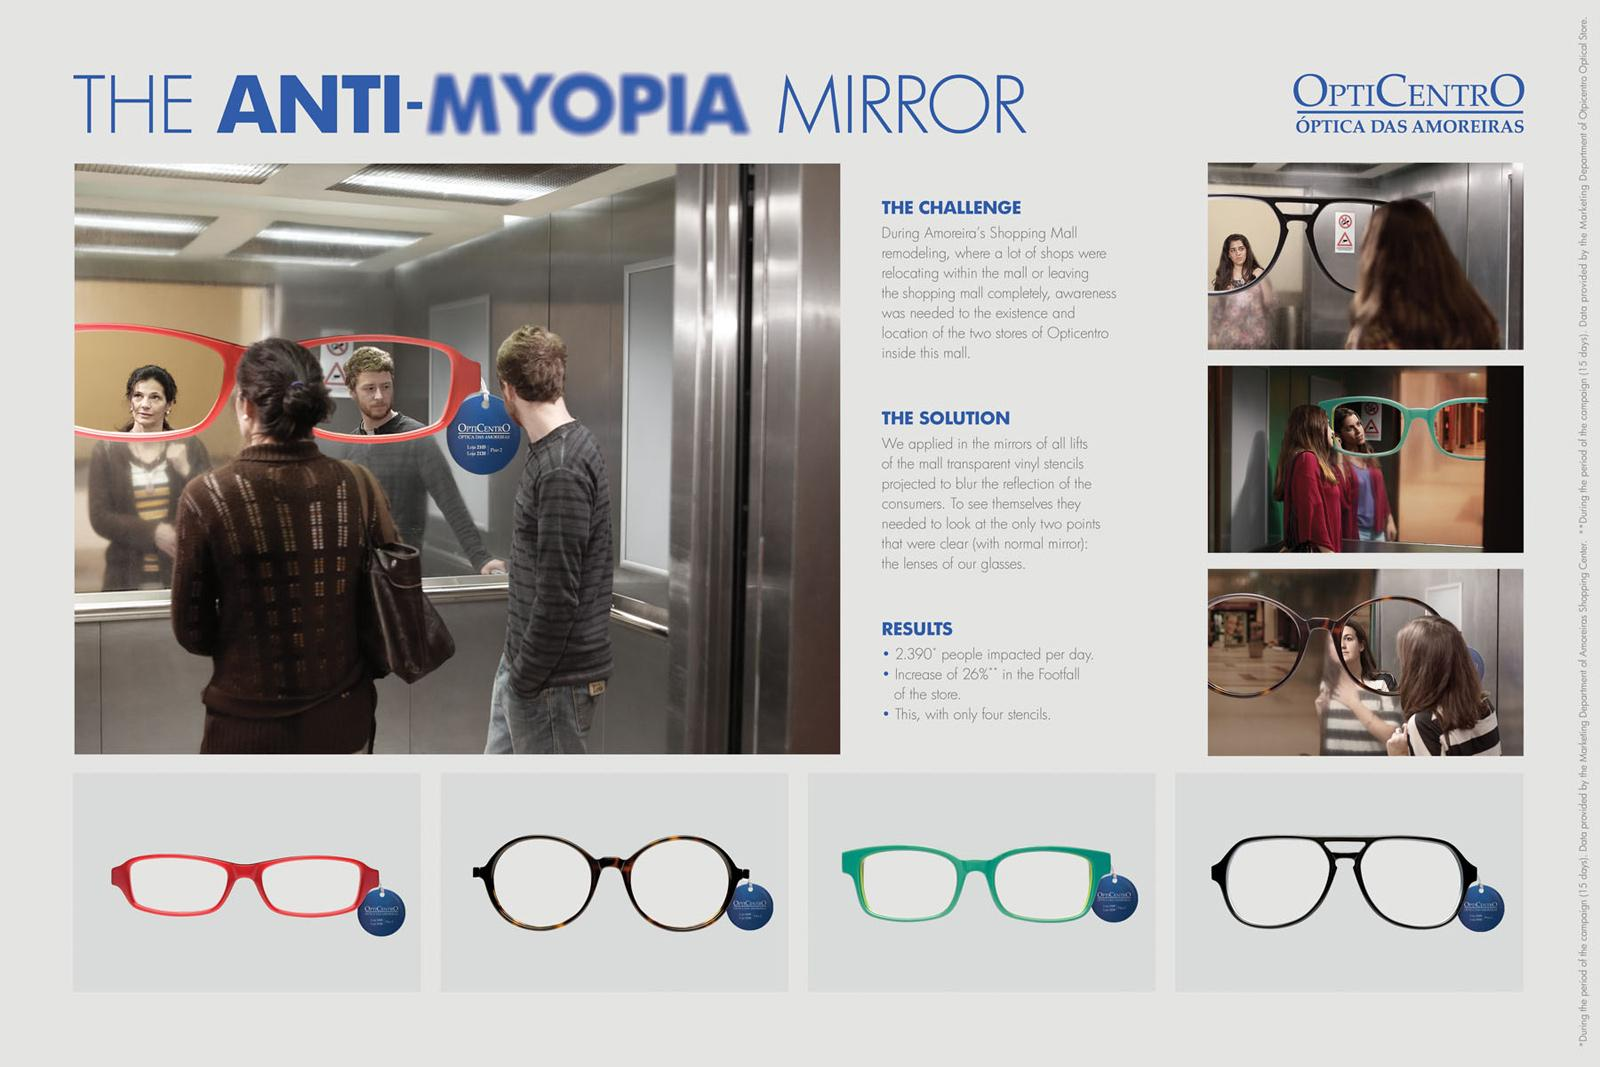 Opticentro Outdoor Ad -  Anti-myopia Mirror